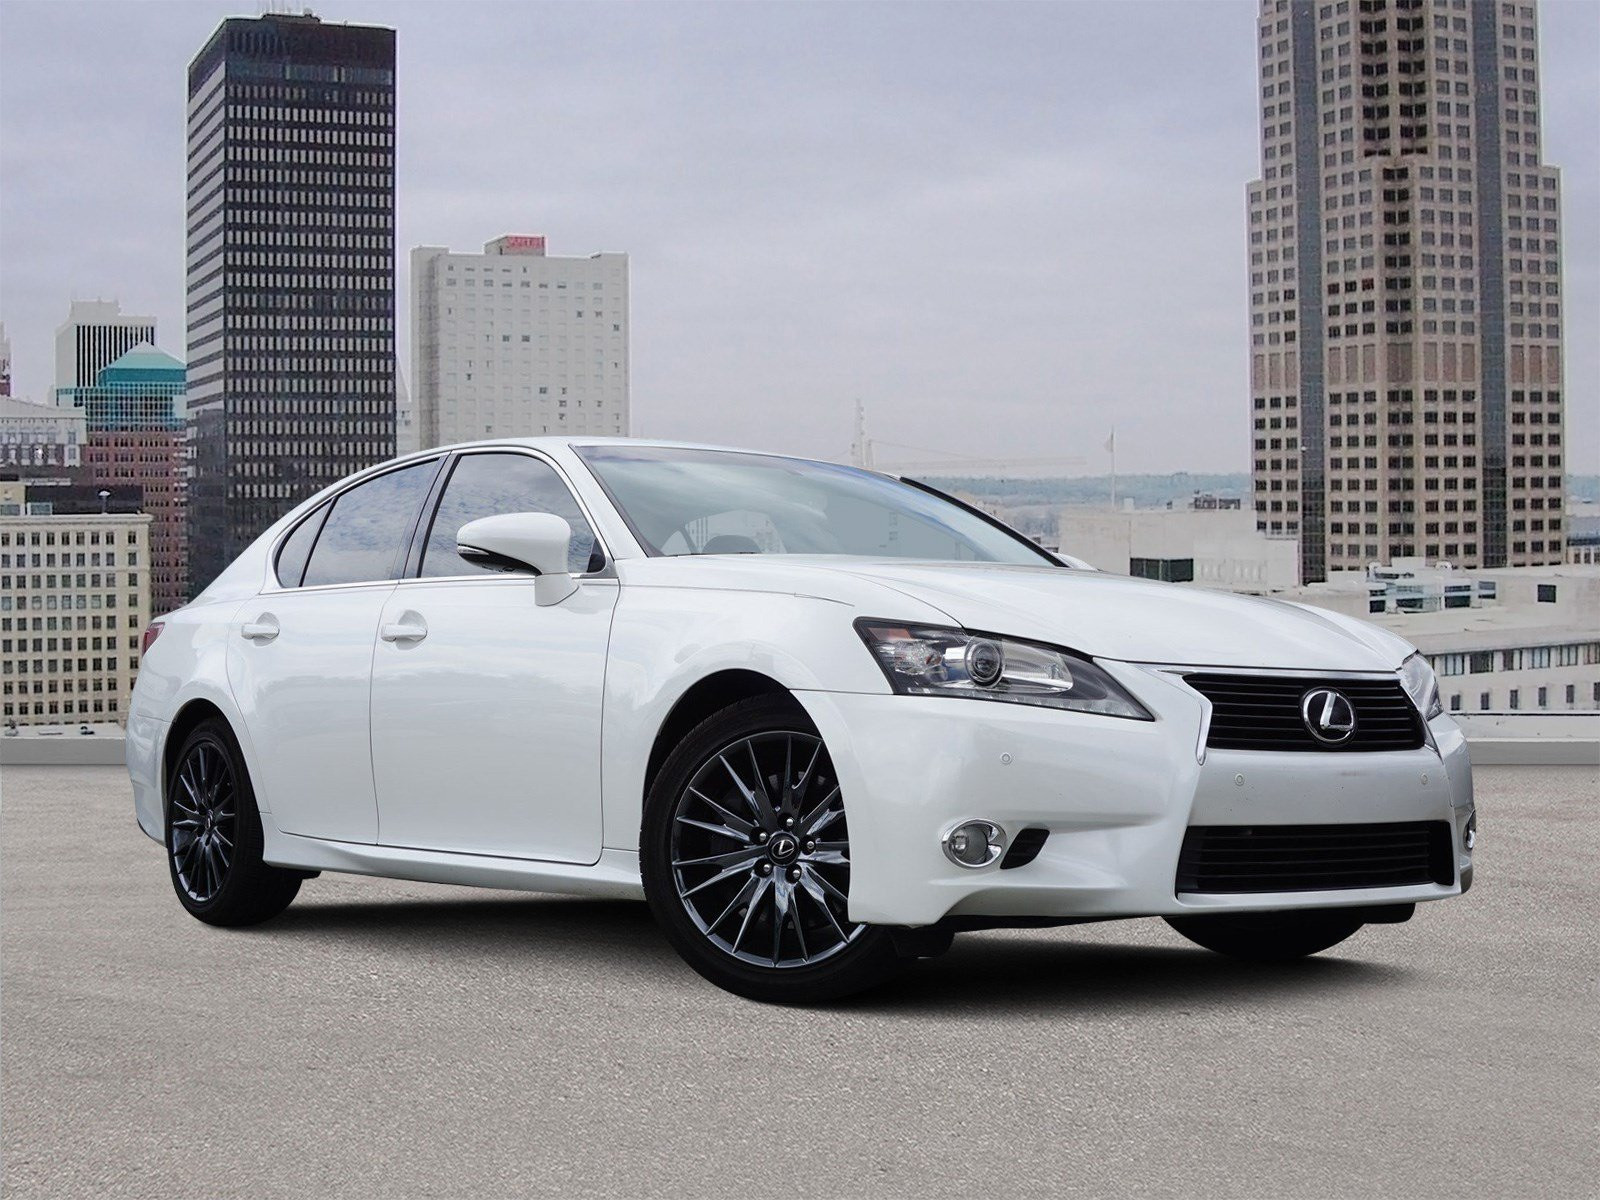 gs hardwood floors ltd of pre owned 2013 lexus gs 350 350 4dr car in union city d5026326 pertaining to pre owned 2013 lexus gs 350 350